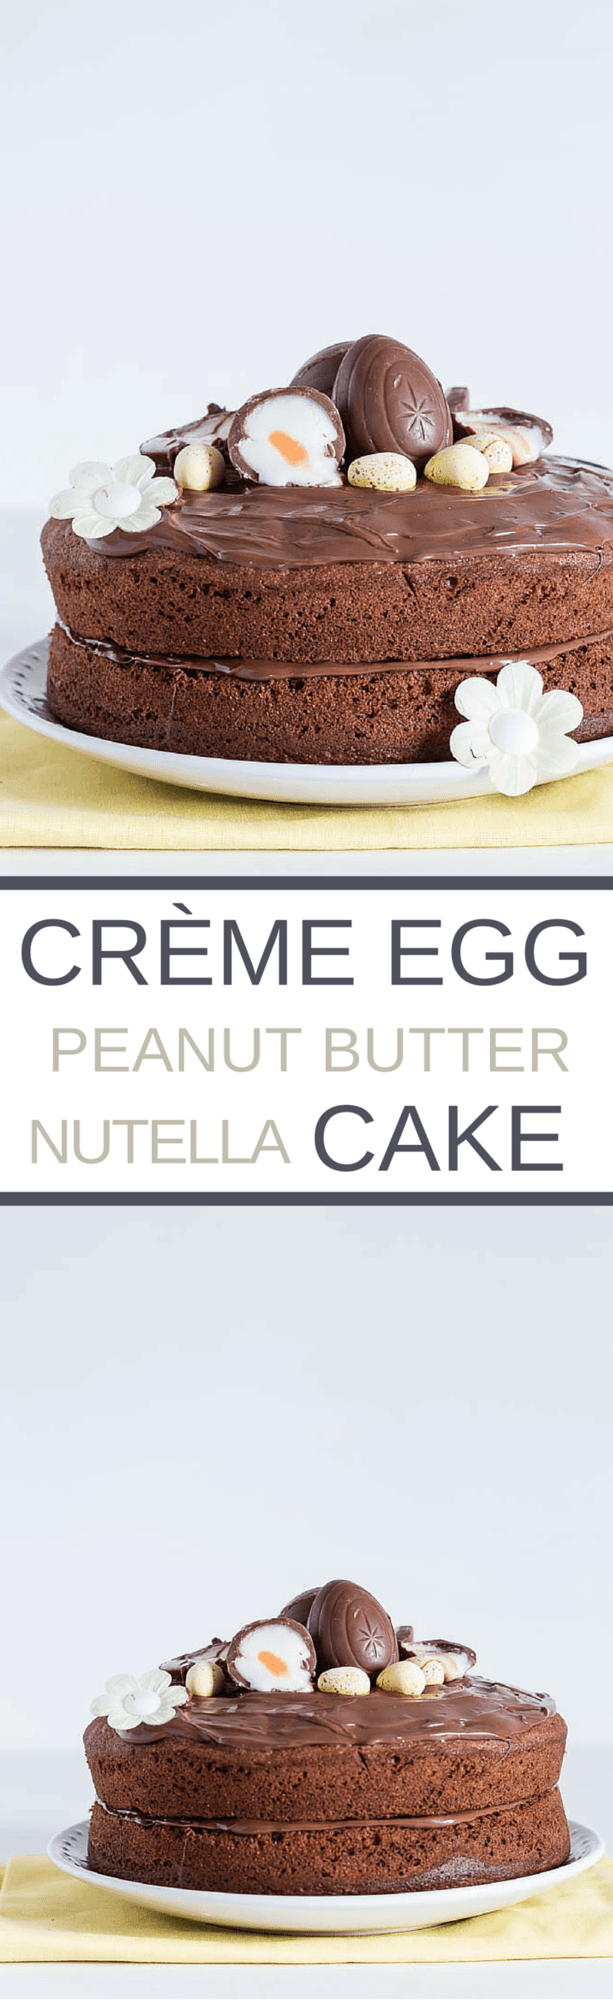 Creme Egg Peanut Butter And Nutella Cake | Recipes From A Pantry